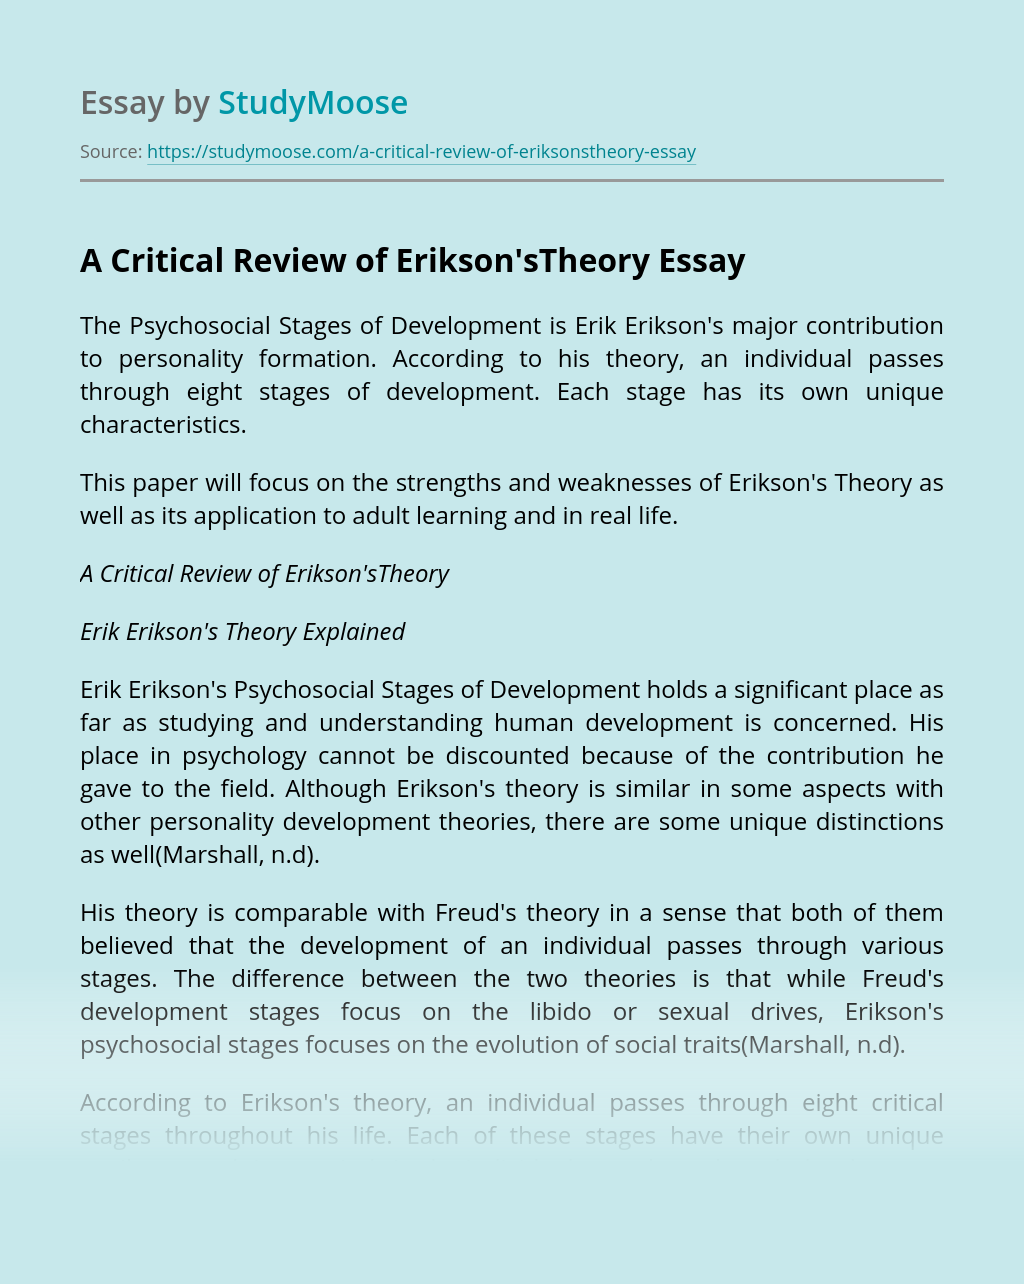 A Critical Review of Erikson'sTheory